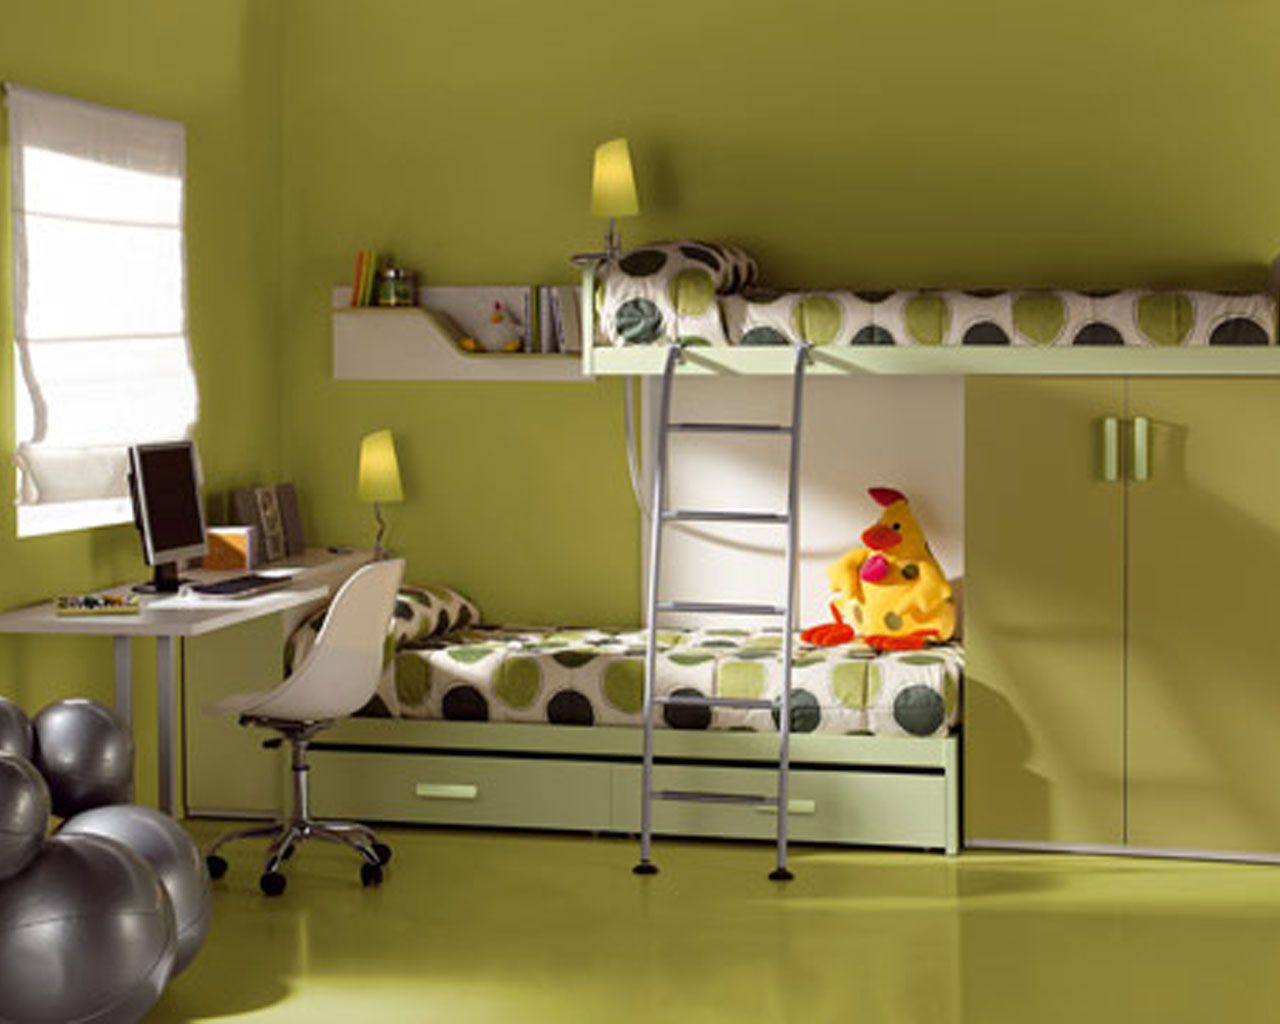 Best Images About Childrens Bed Room On Pinterest For Kids   Kids interior  design bedrooms. Kids Rooms Decor Ideas Home Design And Interior Decorating Ideas